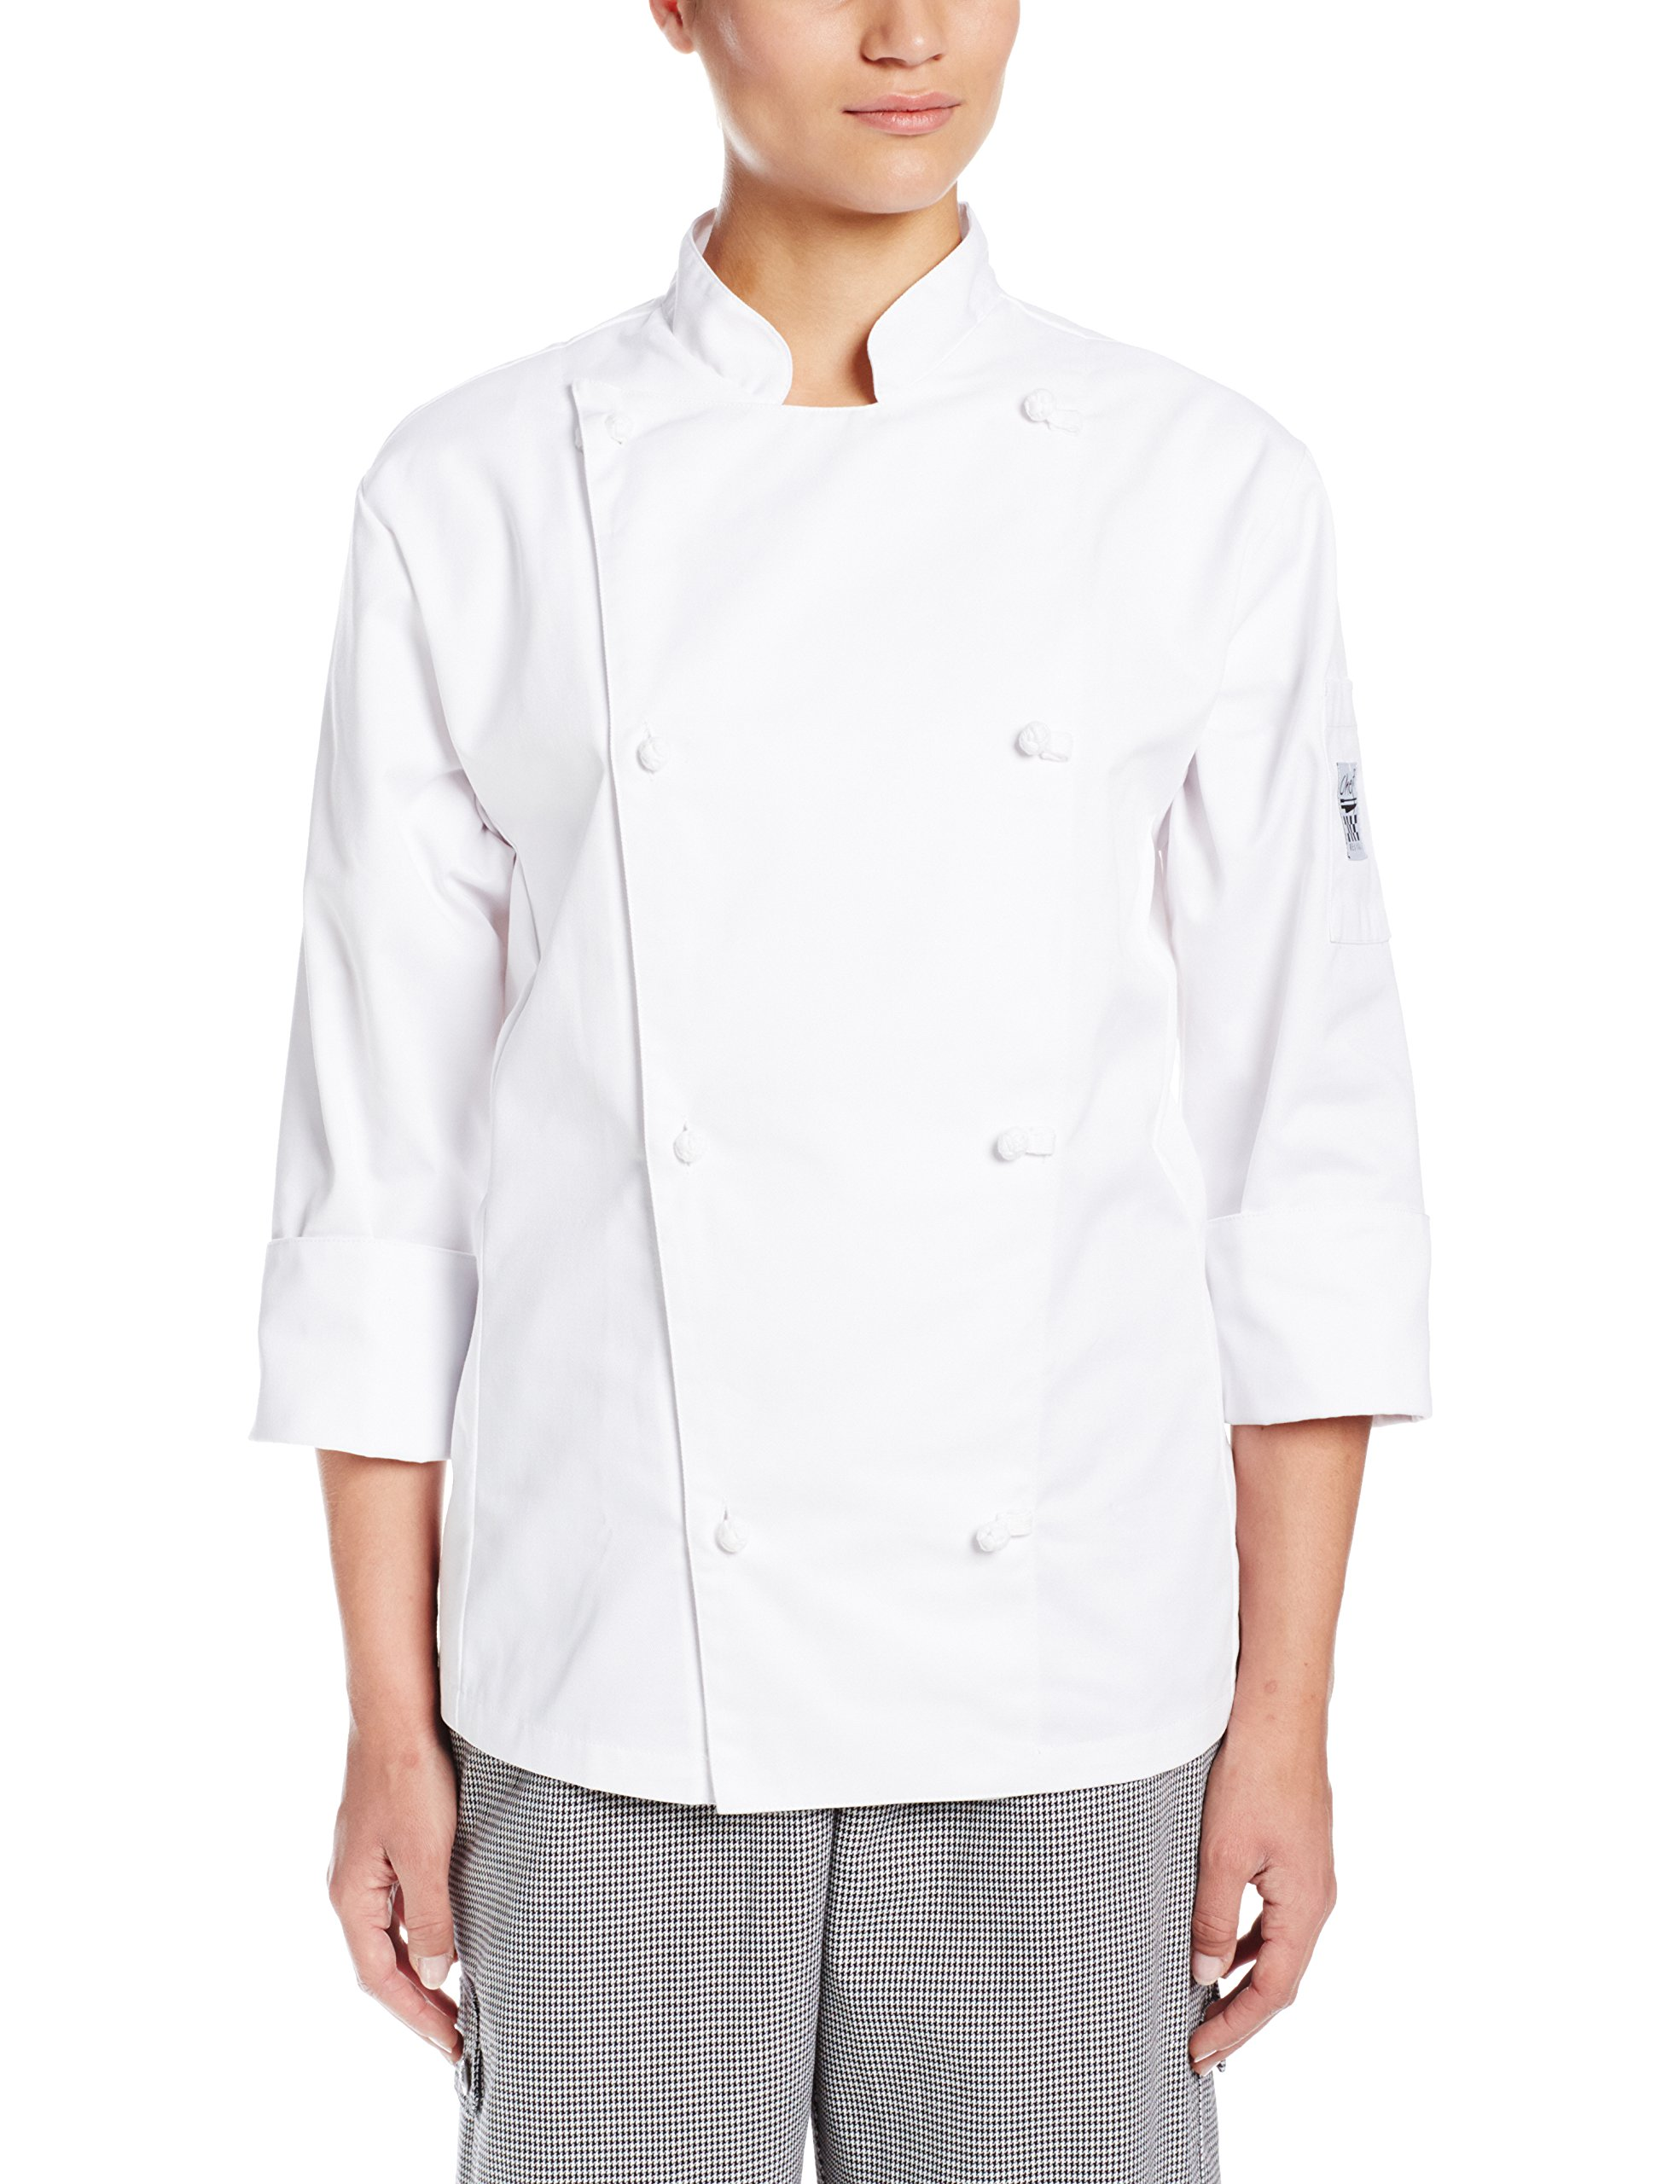 Chef Revival LJ028 Poly Cotton Knife and Steel Ladies Long Sleeve Jacket with Cloth Knot Buttons, Medium, White by Chef Revival